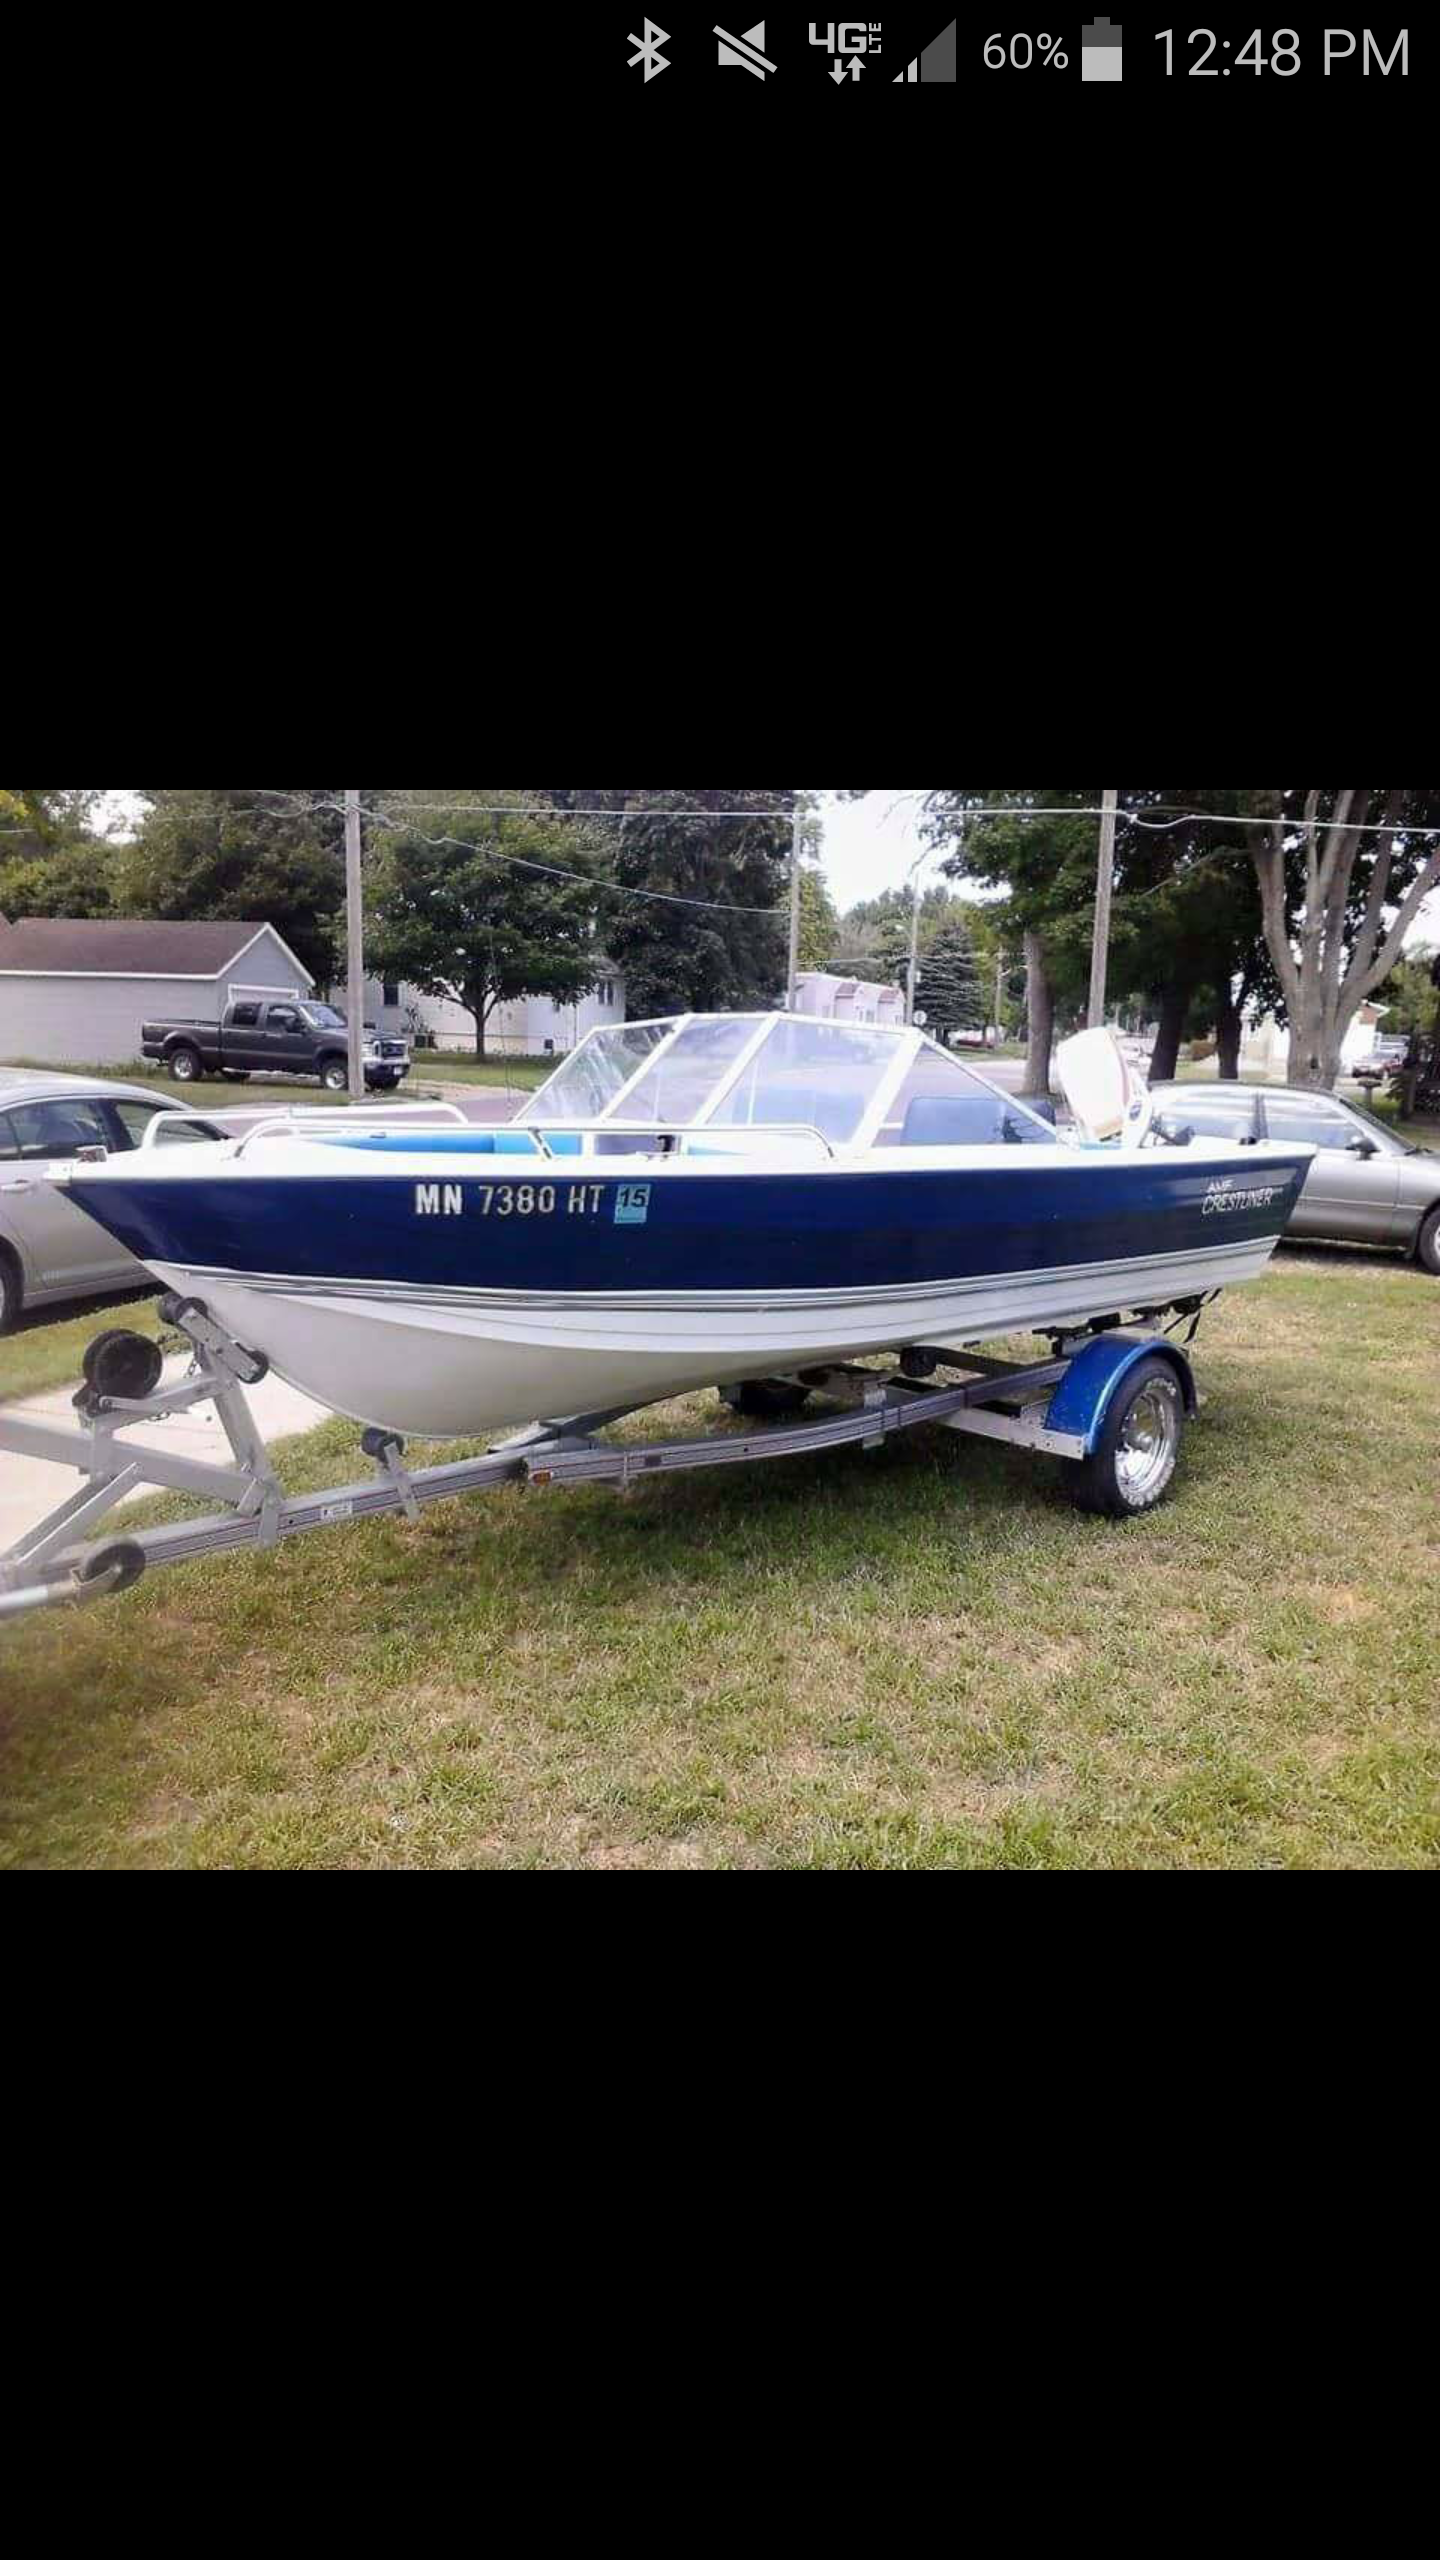 1978 crestliner nordic 70 hp free listing for sale list for Lifetime fishing license mn